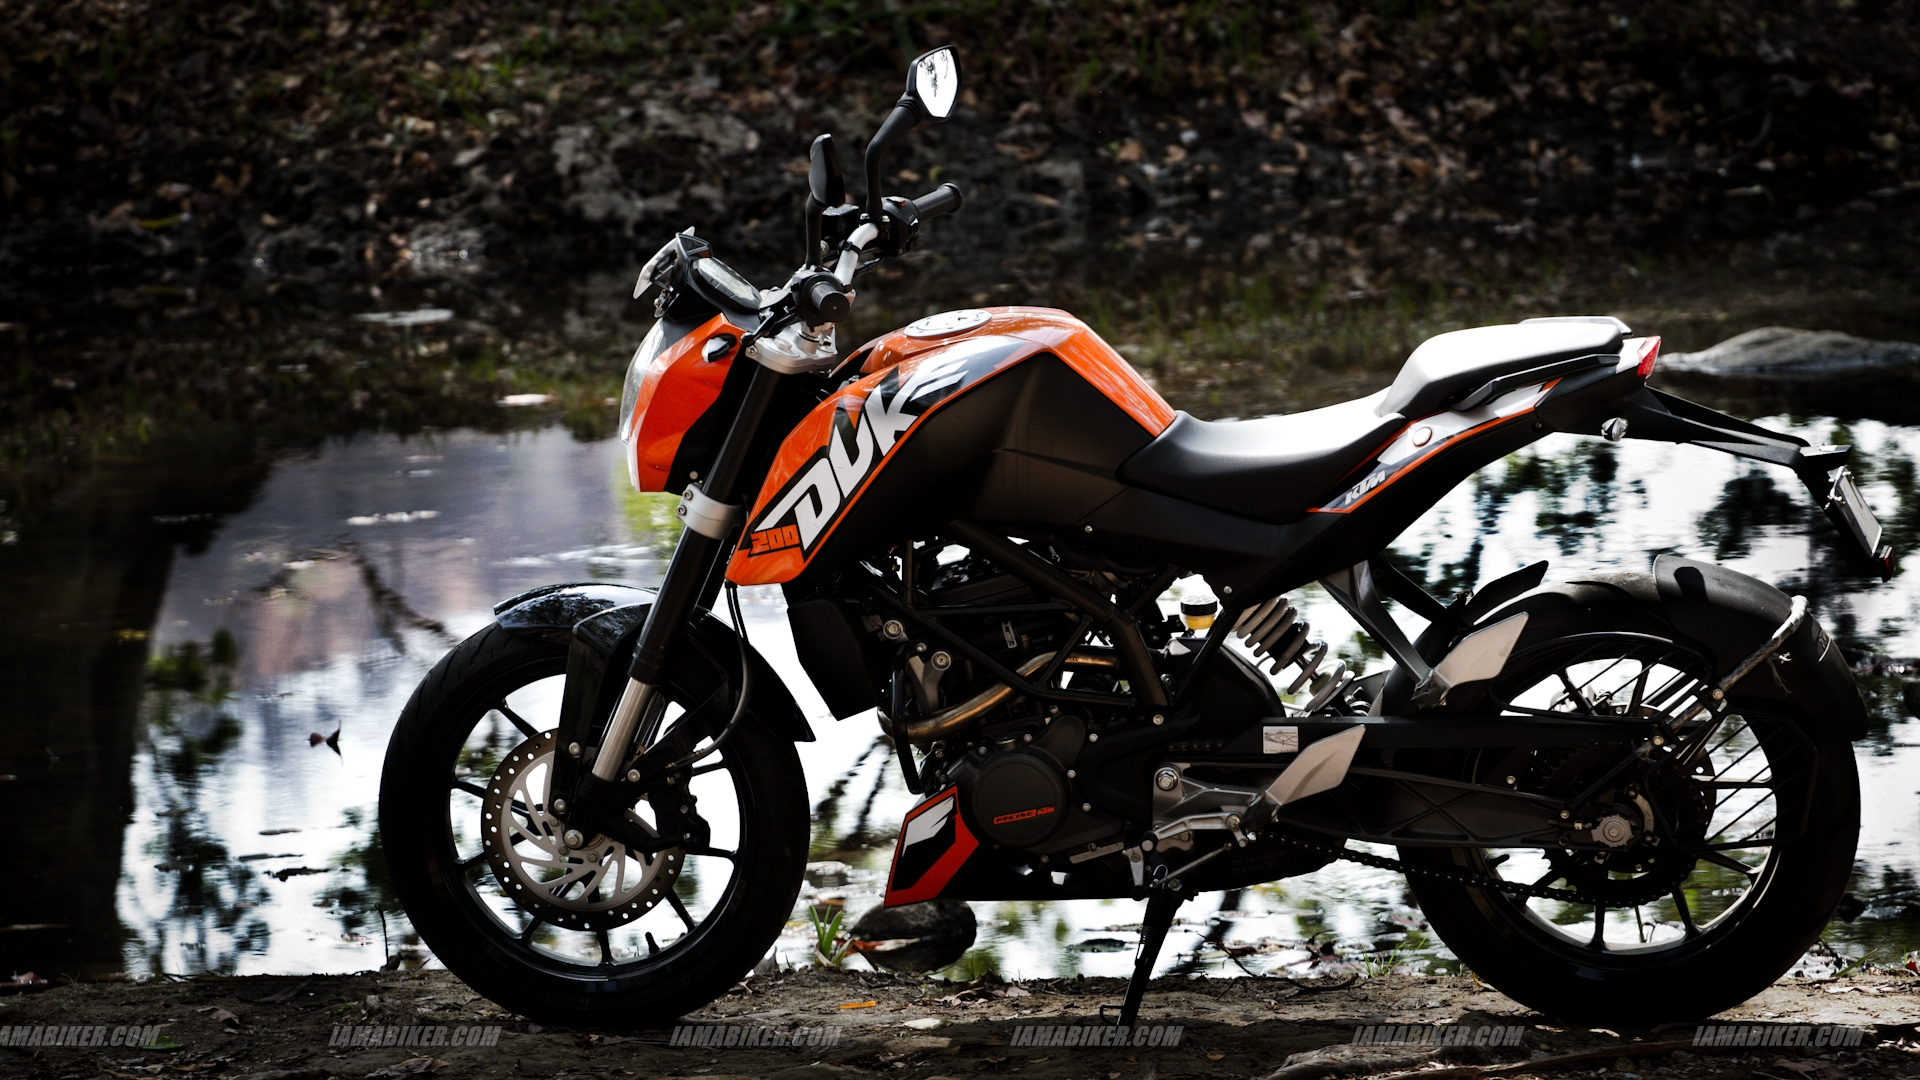 Ktm duke 200 hd wallpapers